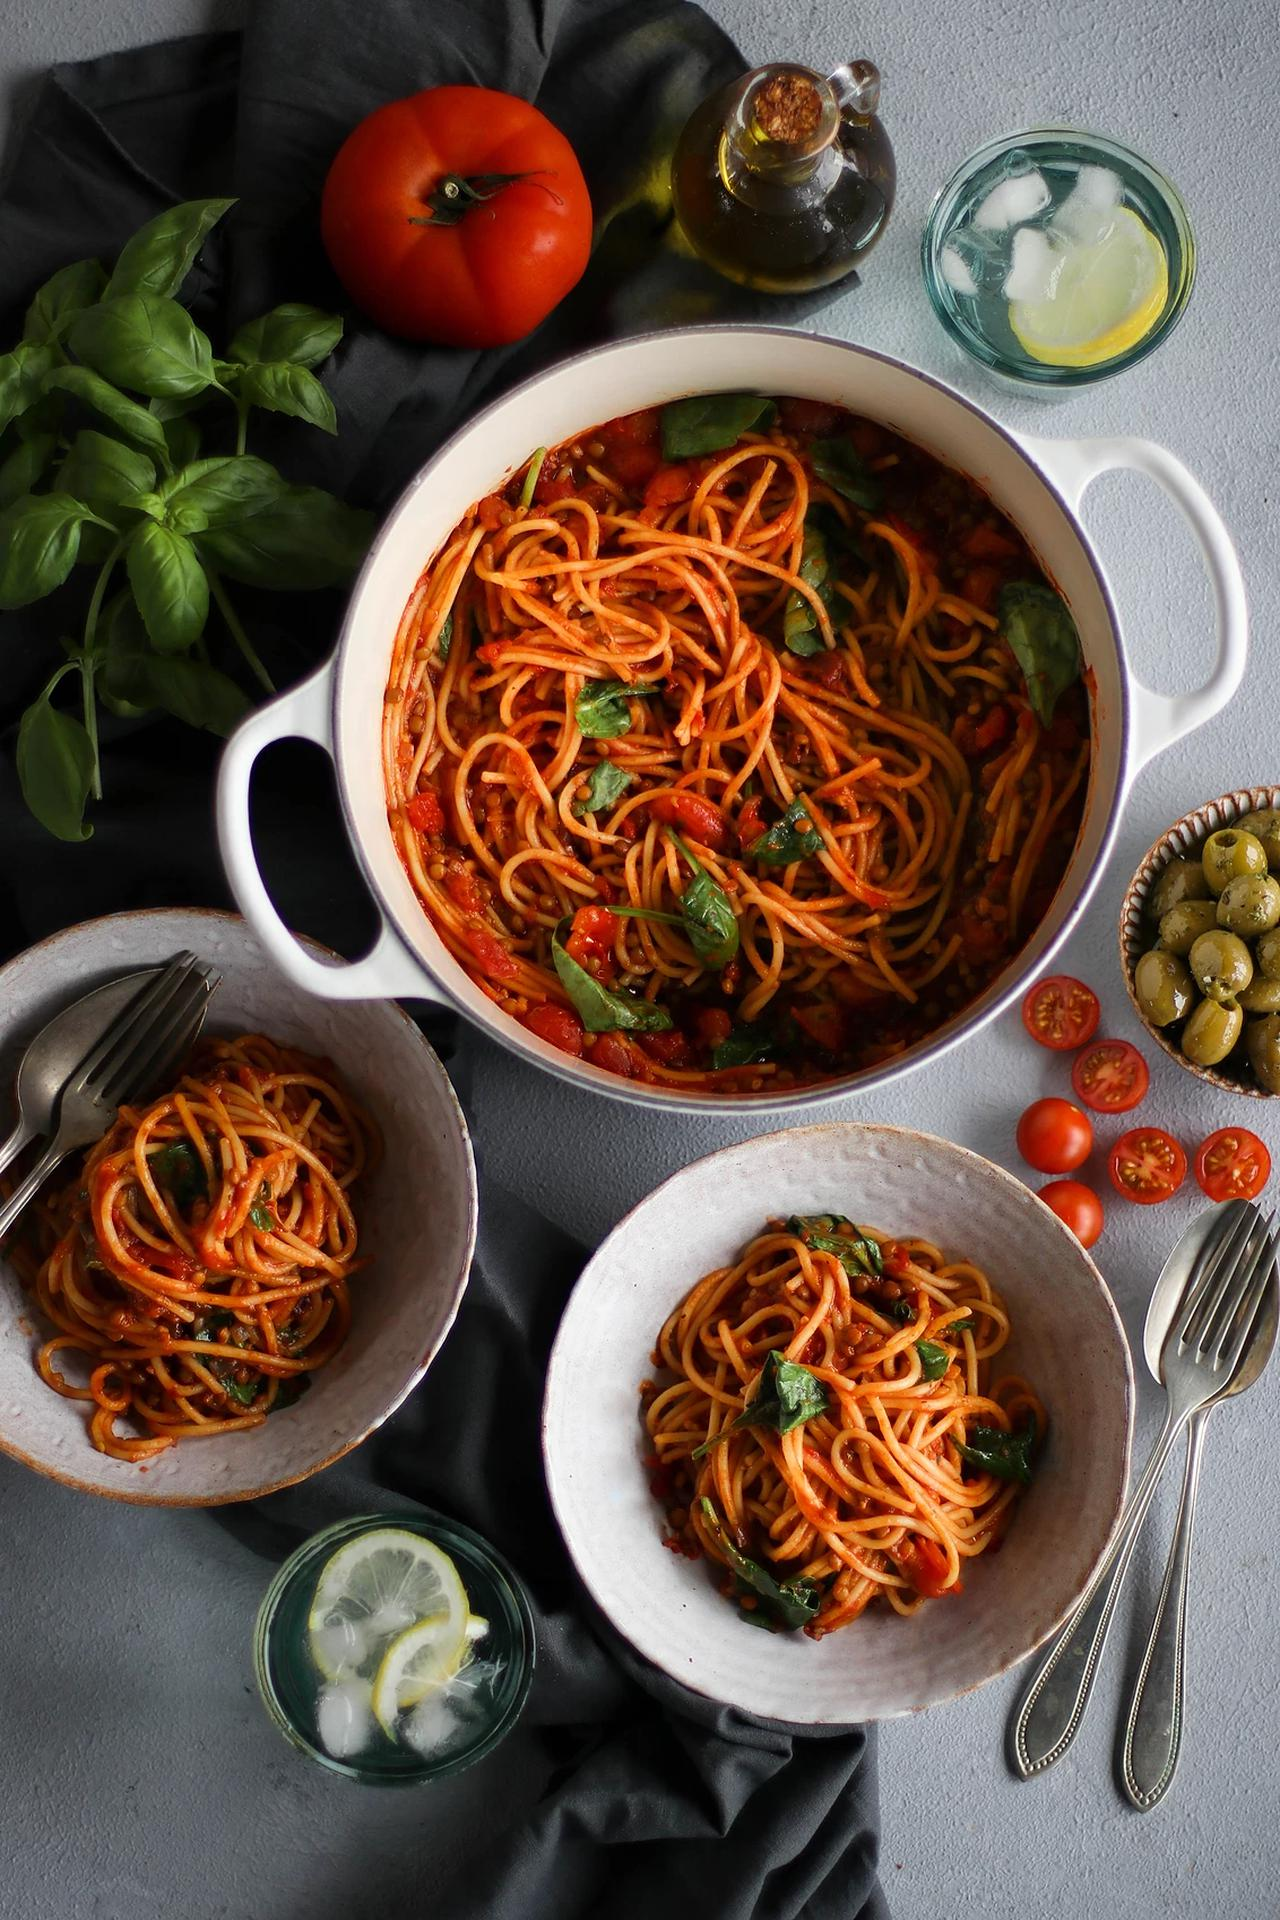 Main image of One-Pot Tomato Lentil Pasta